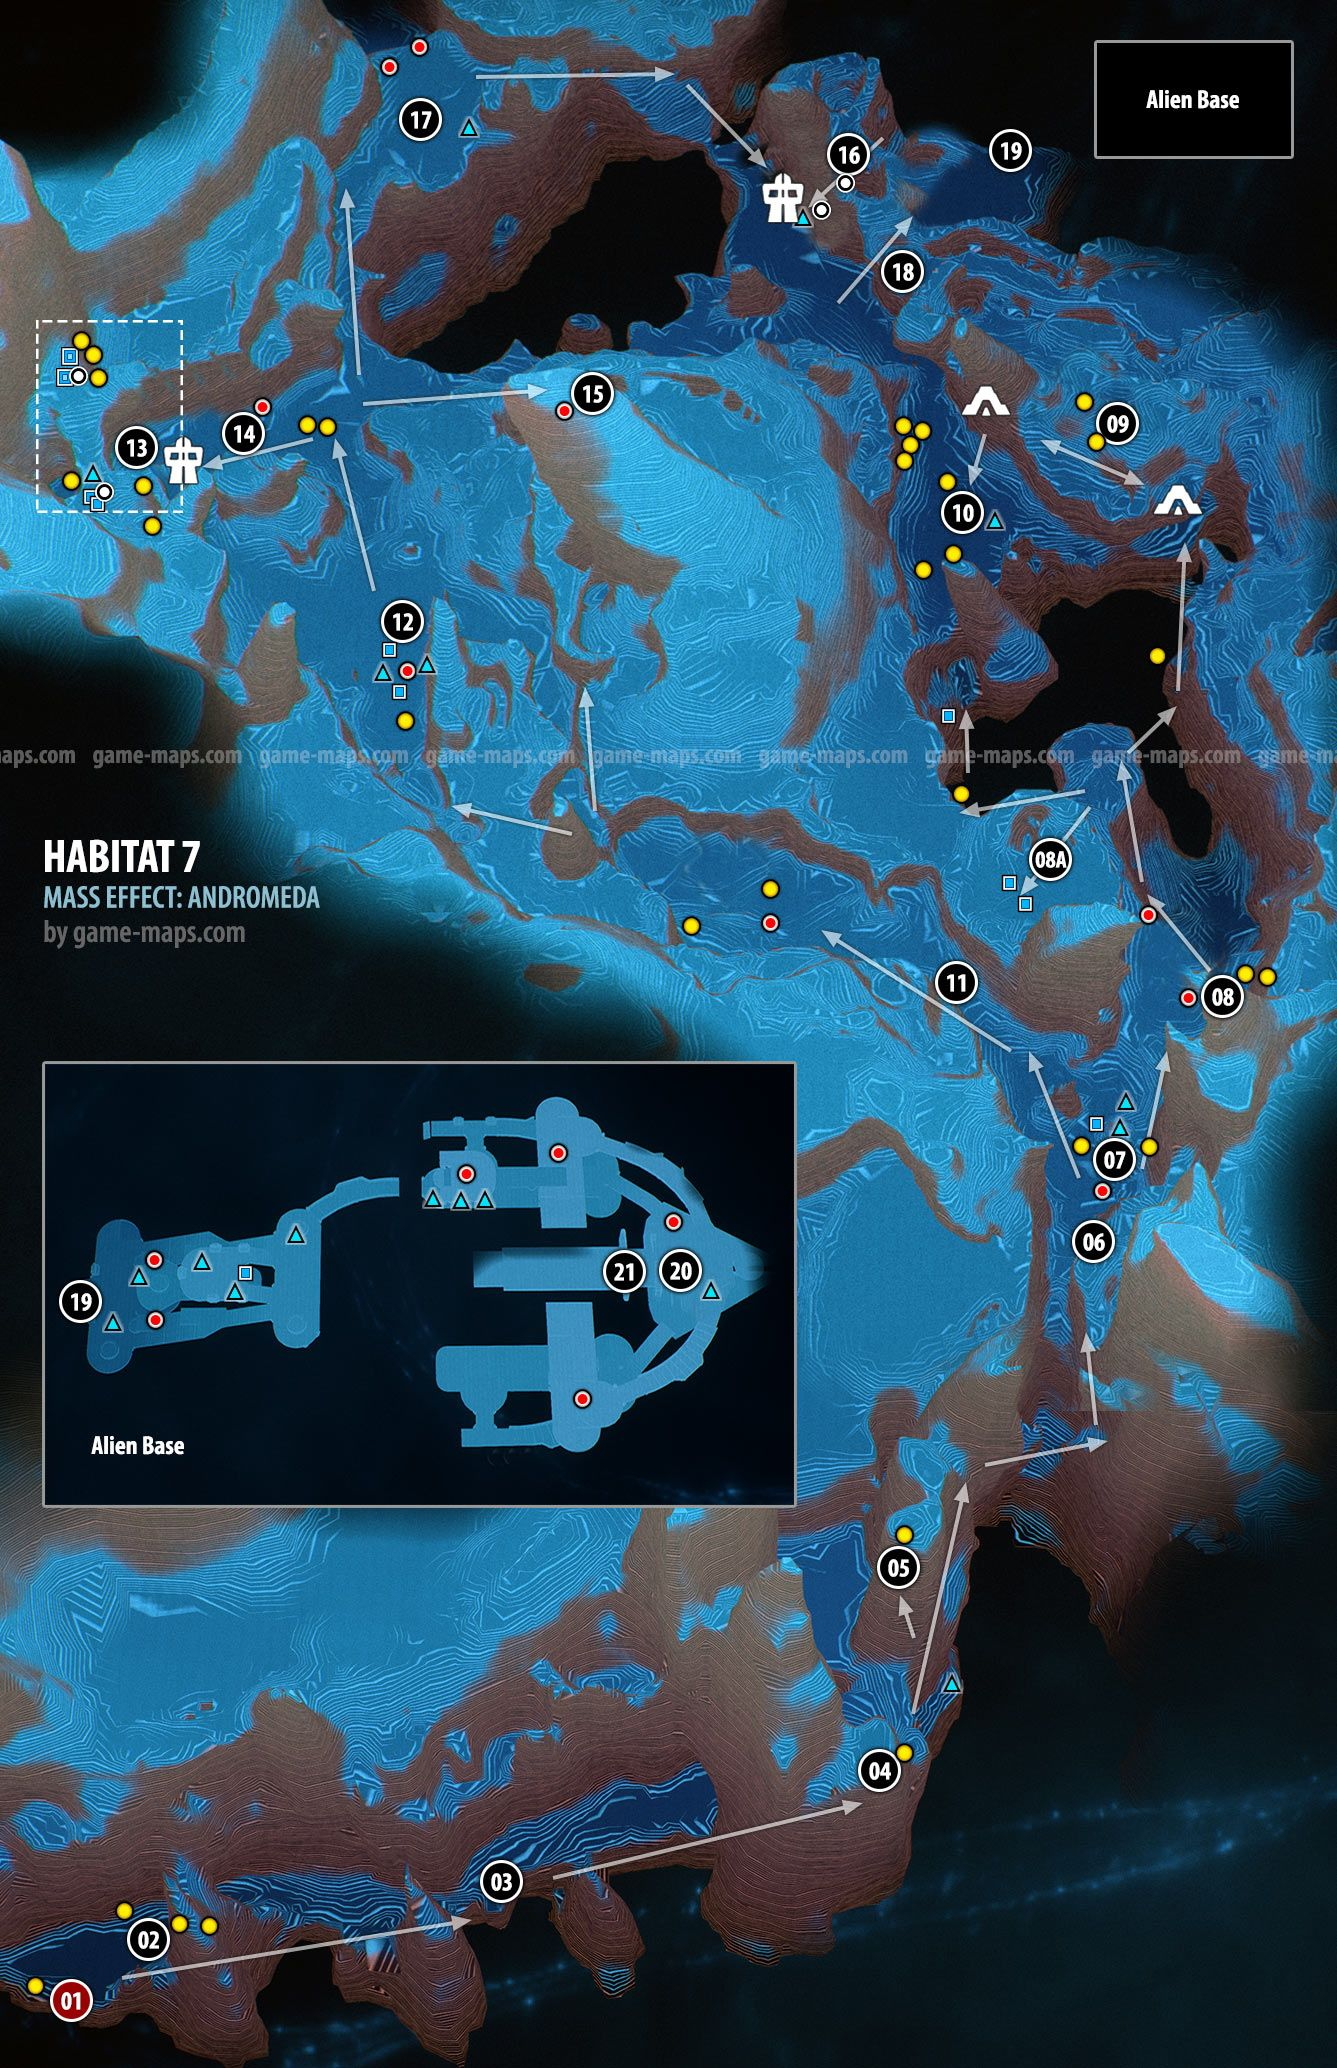 Image result for mass effect andromeda maps gameing pinterest image result for mass effect andromeda maps gumiabroncs Image collections